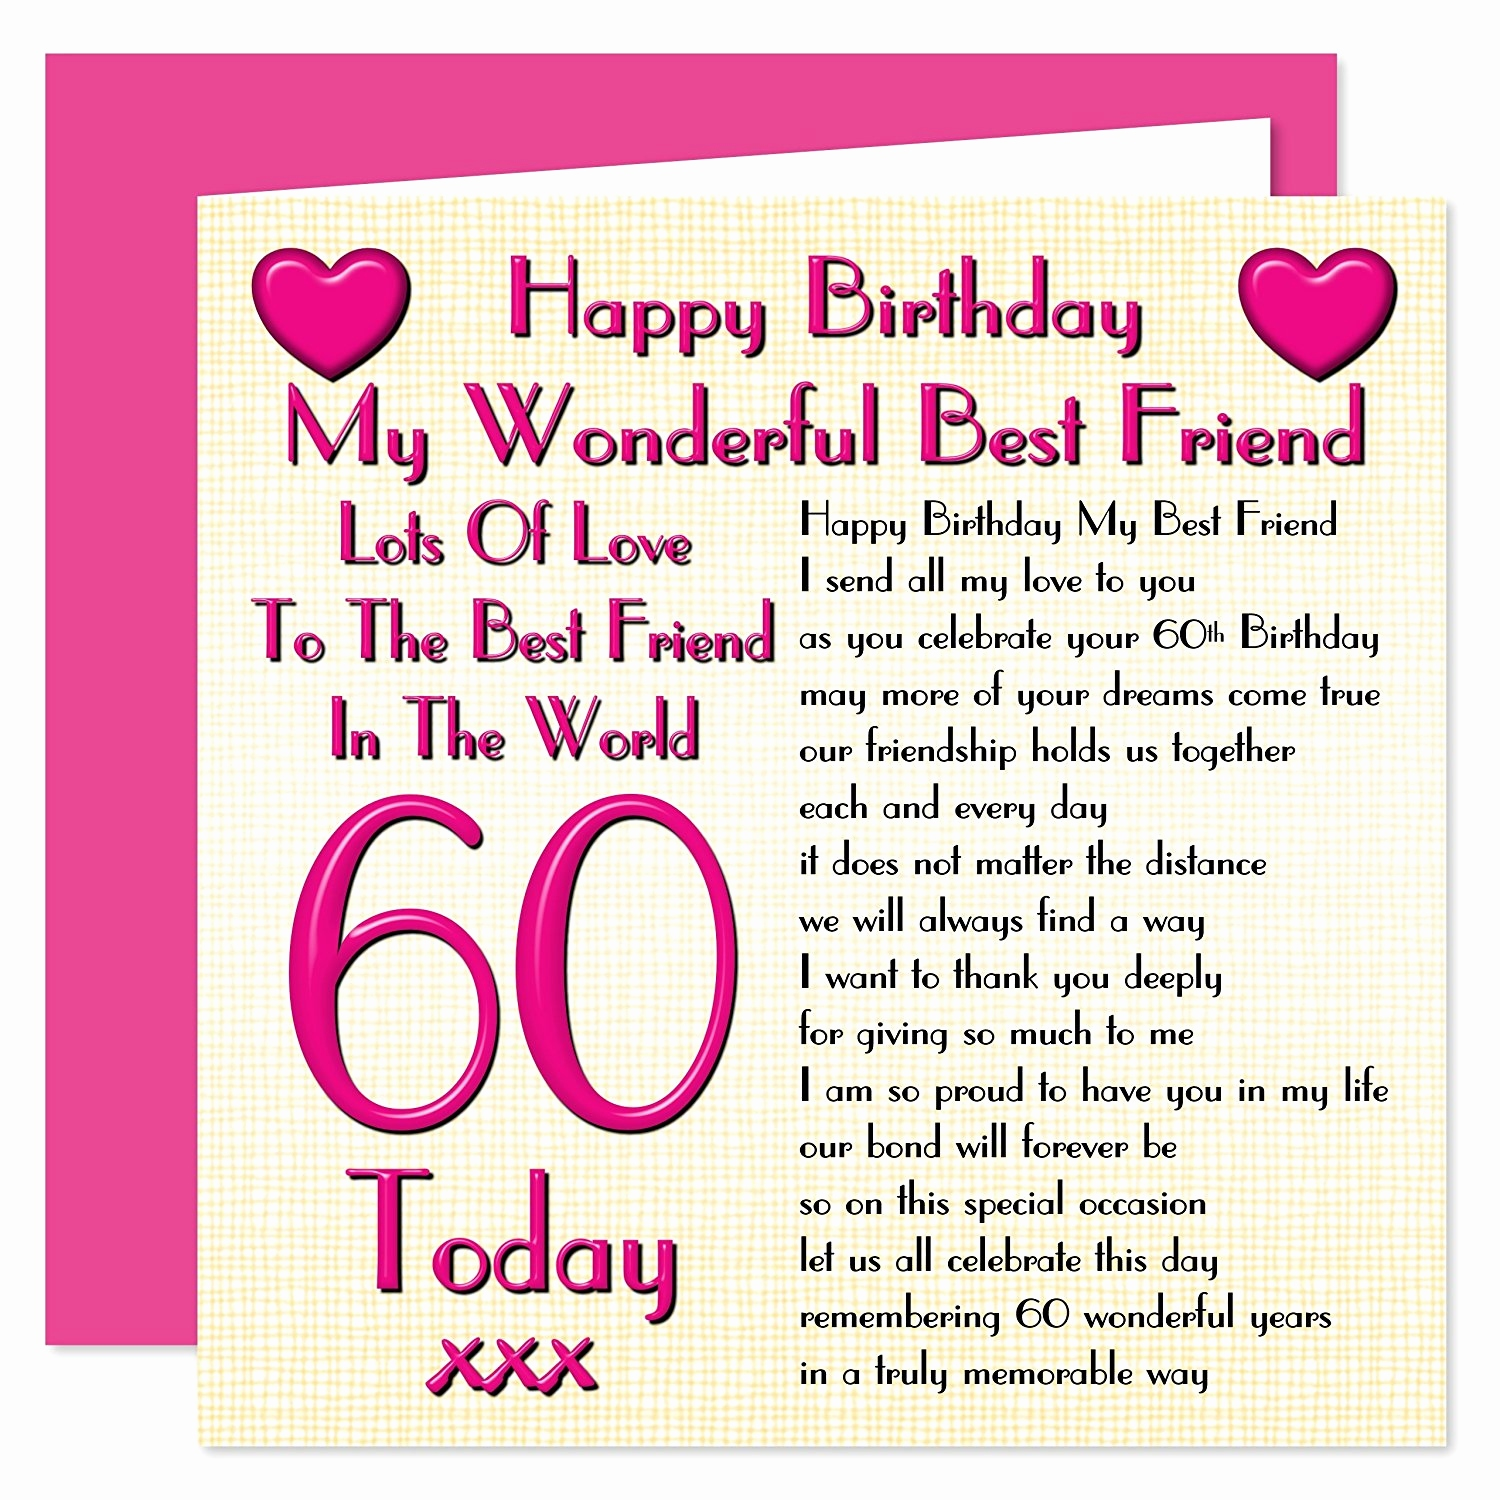 free birthday card verses ; verses-for-60th-birthday-cards-free-luxury-female-birthday-card-verses-alanarasbach-of-verses-for-60th-birthday-cards-free